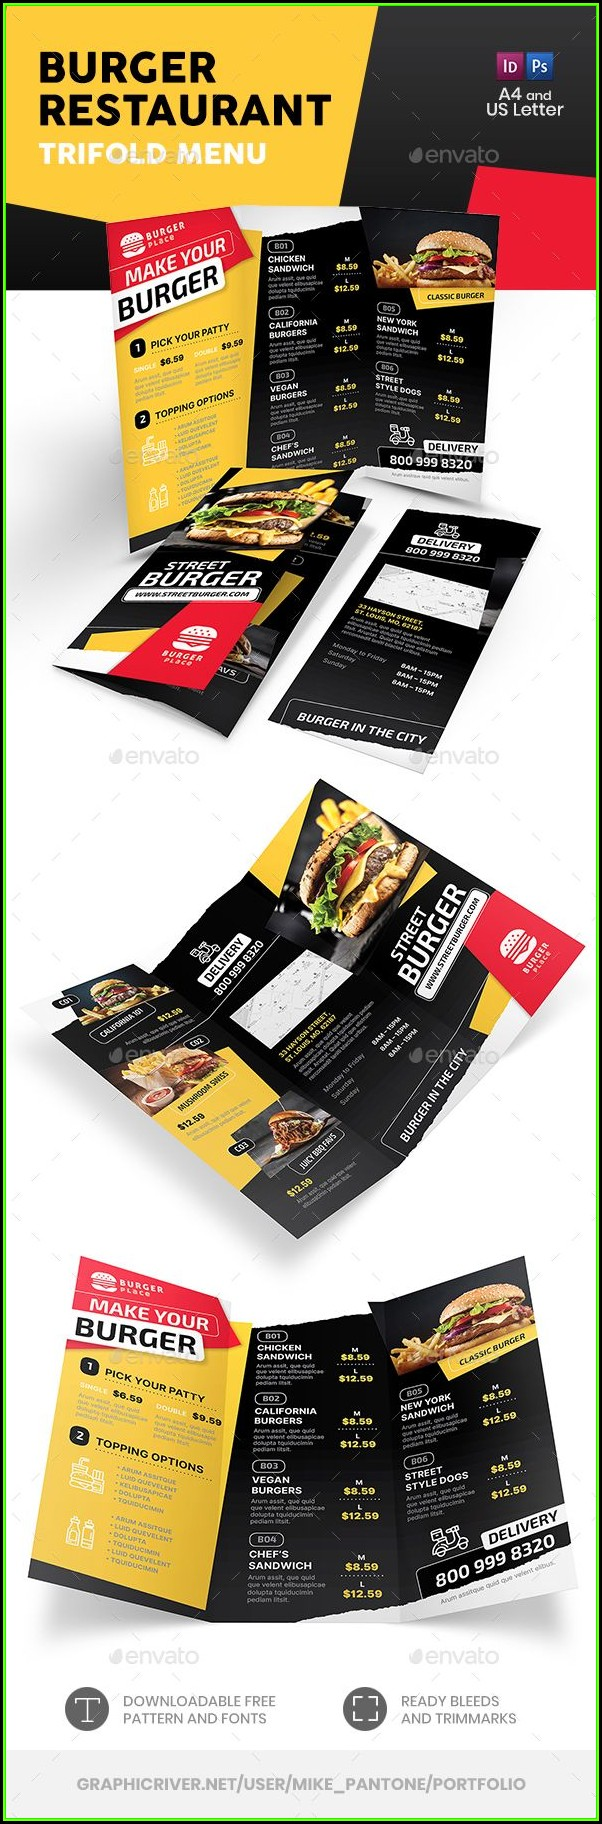 Tri Fold Menu Template Indesign